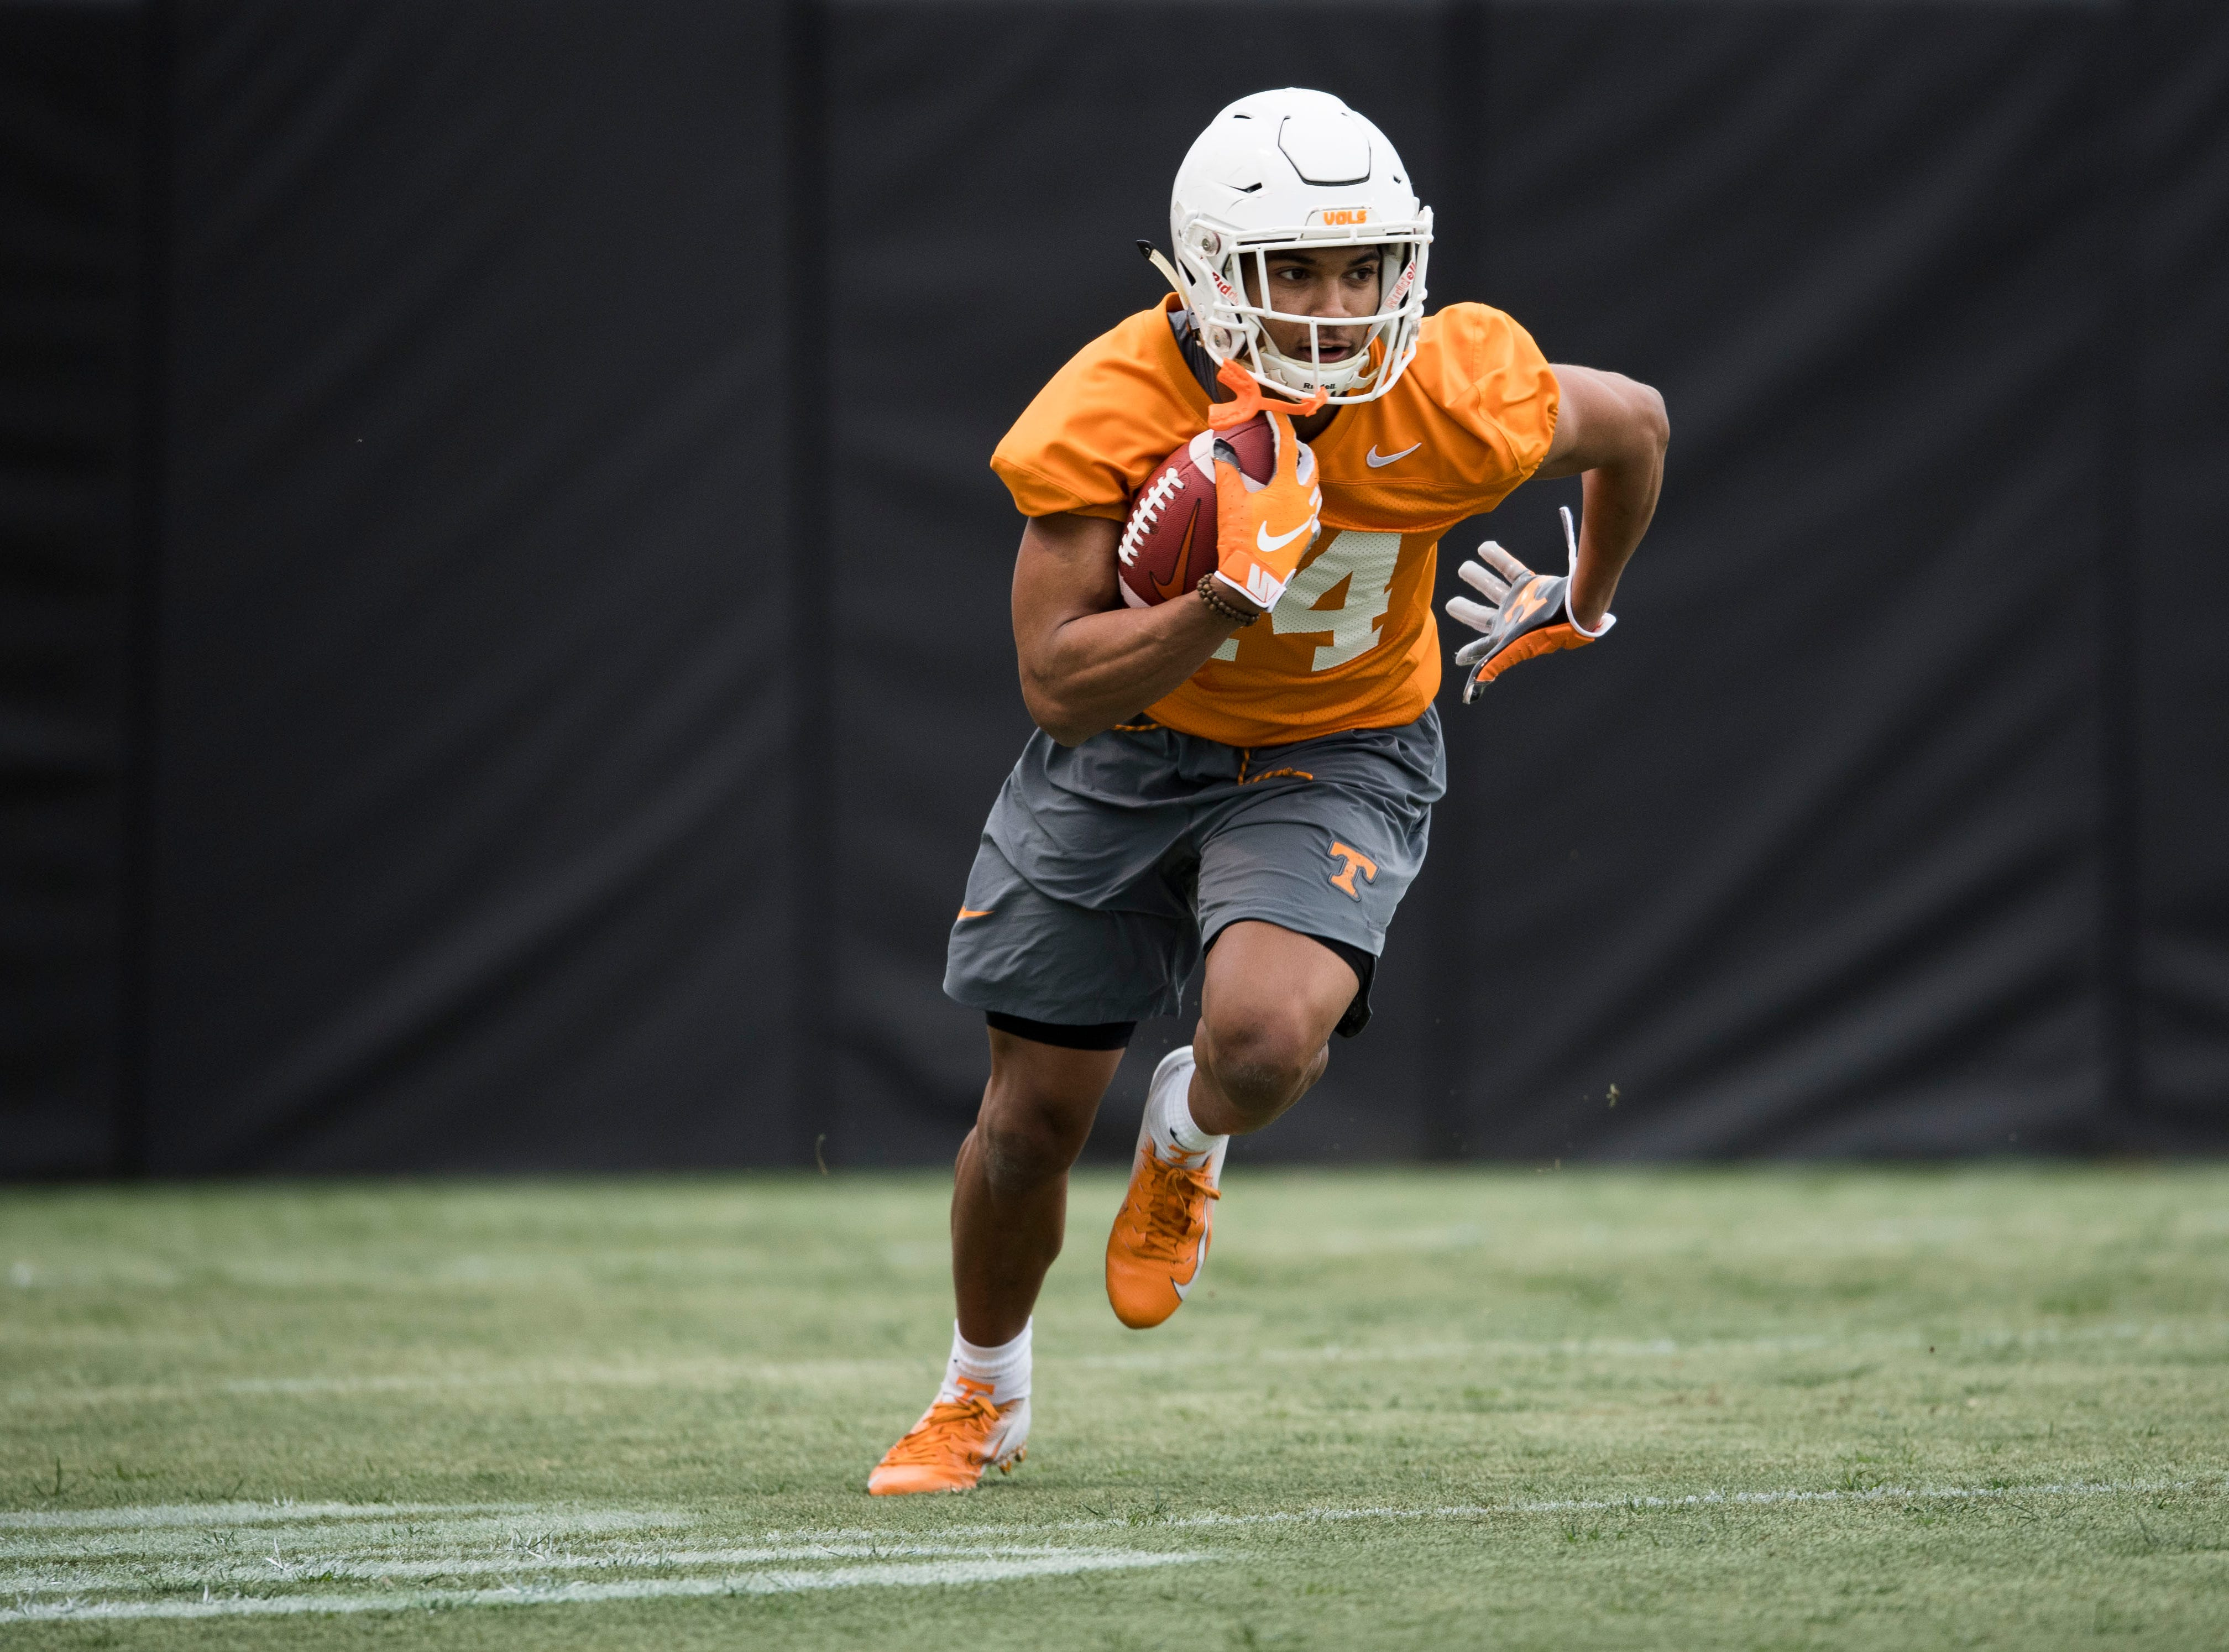 Tennessee's Cheyenne Labruzza (44) participates in a drill during Tennessee football's first practice of the spring season at University of Tennessee Thursday, March 7, 2019.